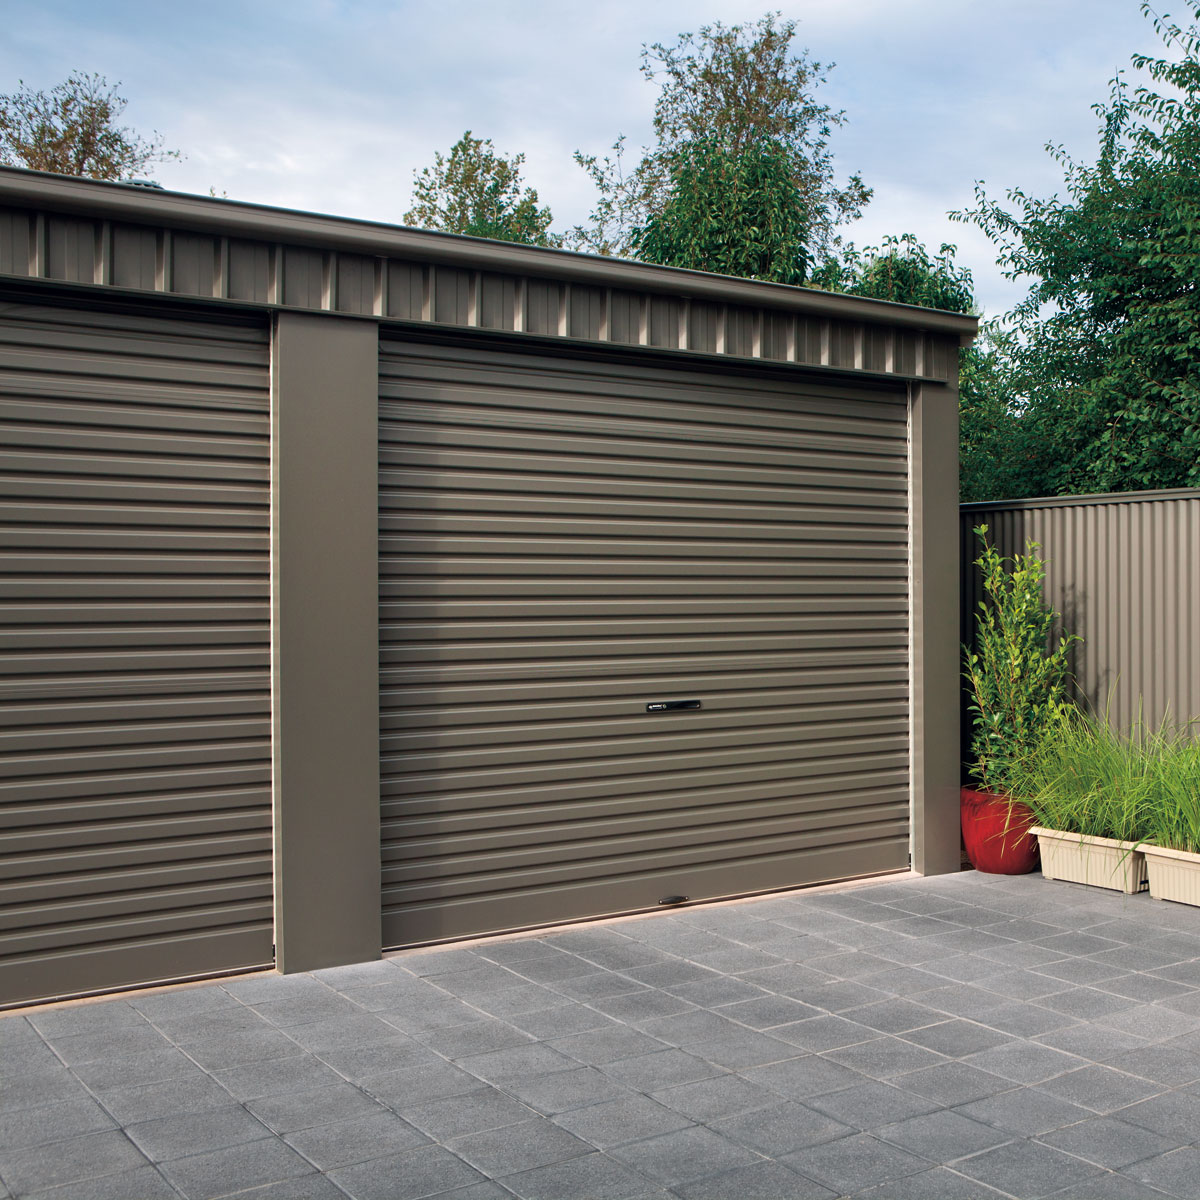 Garages sheds rural industrial sheds stratco choose from both flat and gable roof styles and a huge range of garage sizes from small domestic units to large commercial and farm sheds solutioingenieria Image collections